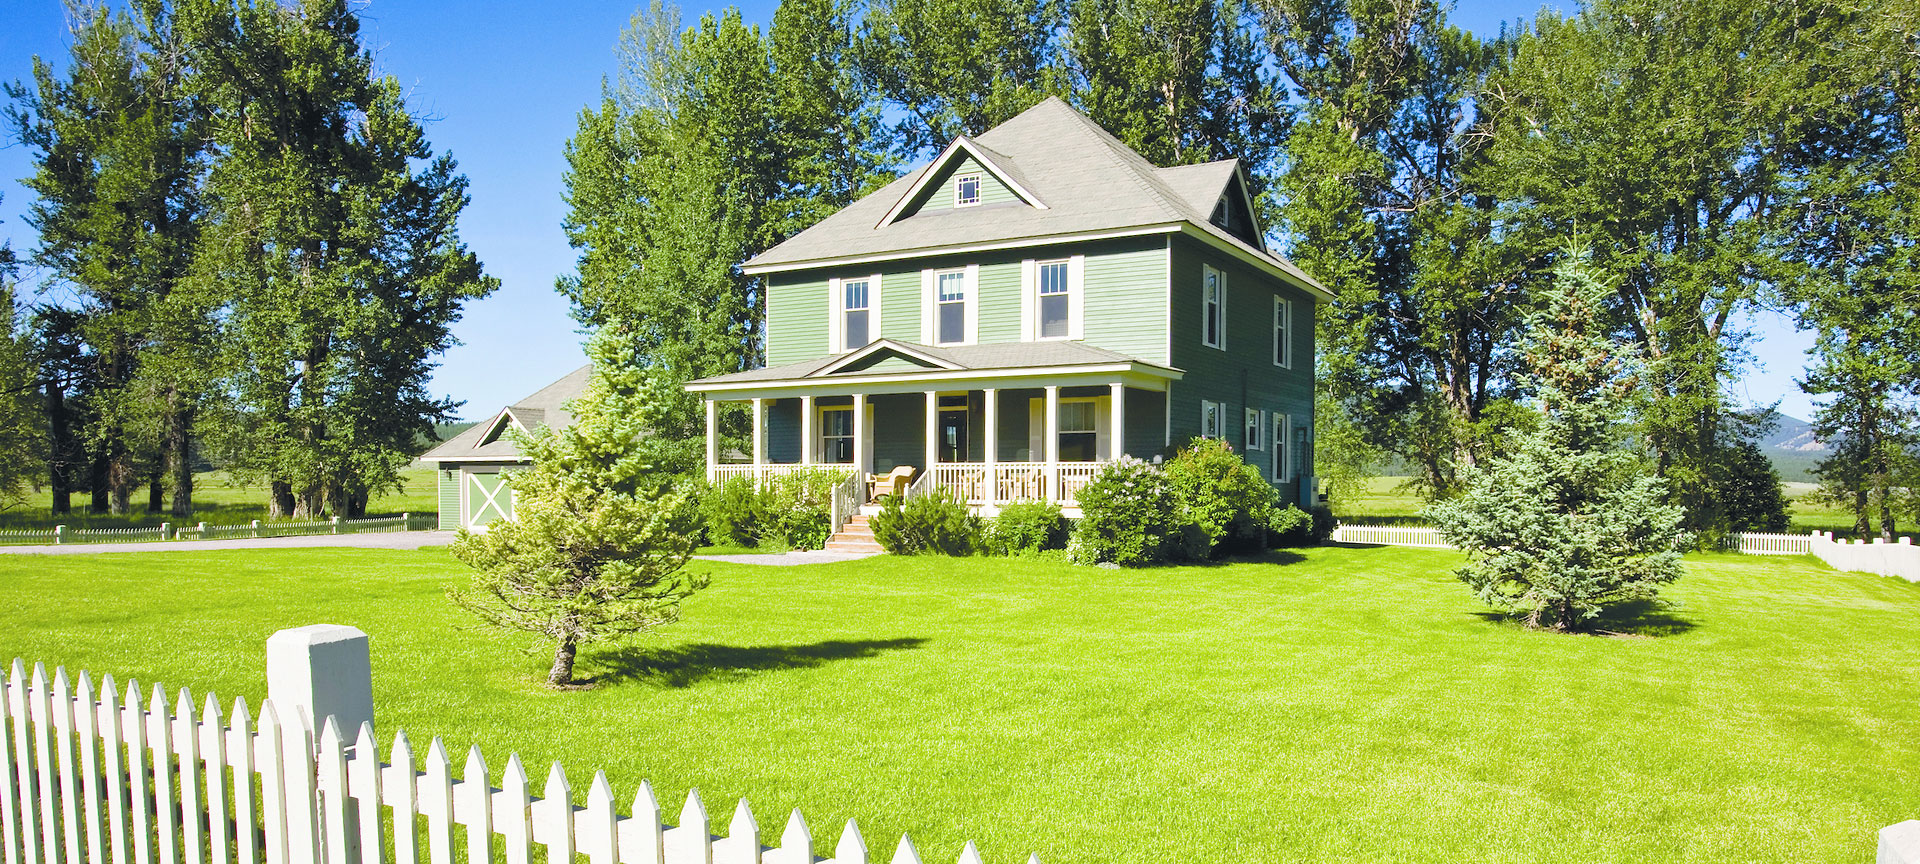 Meadow Home Two-Bedroom